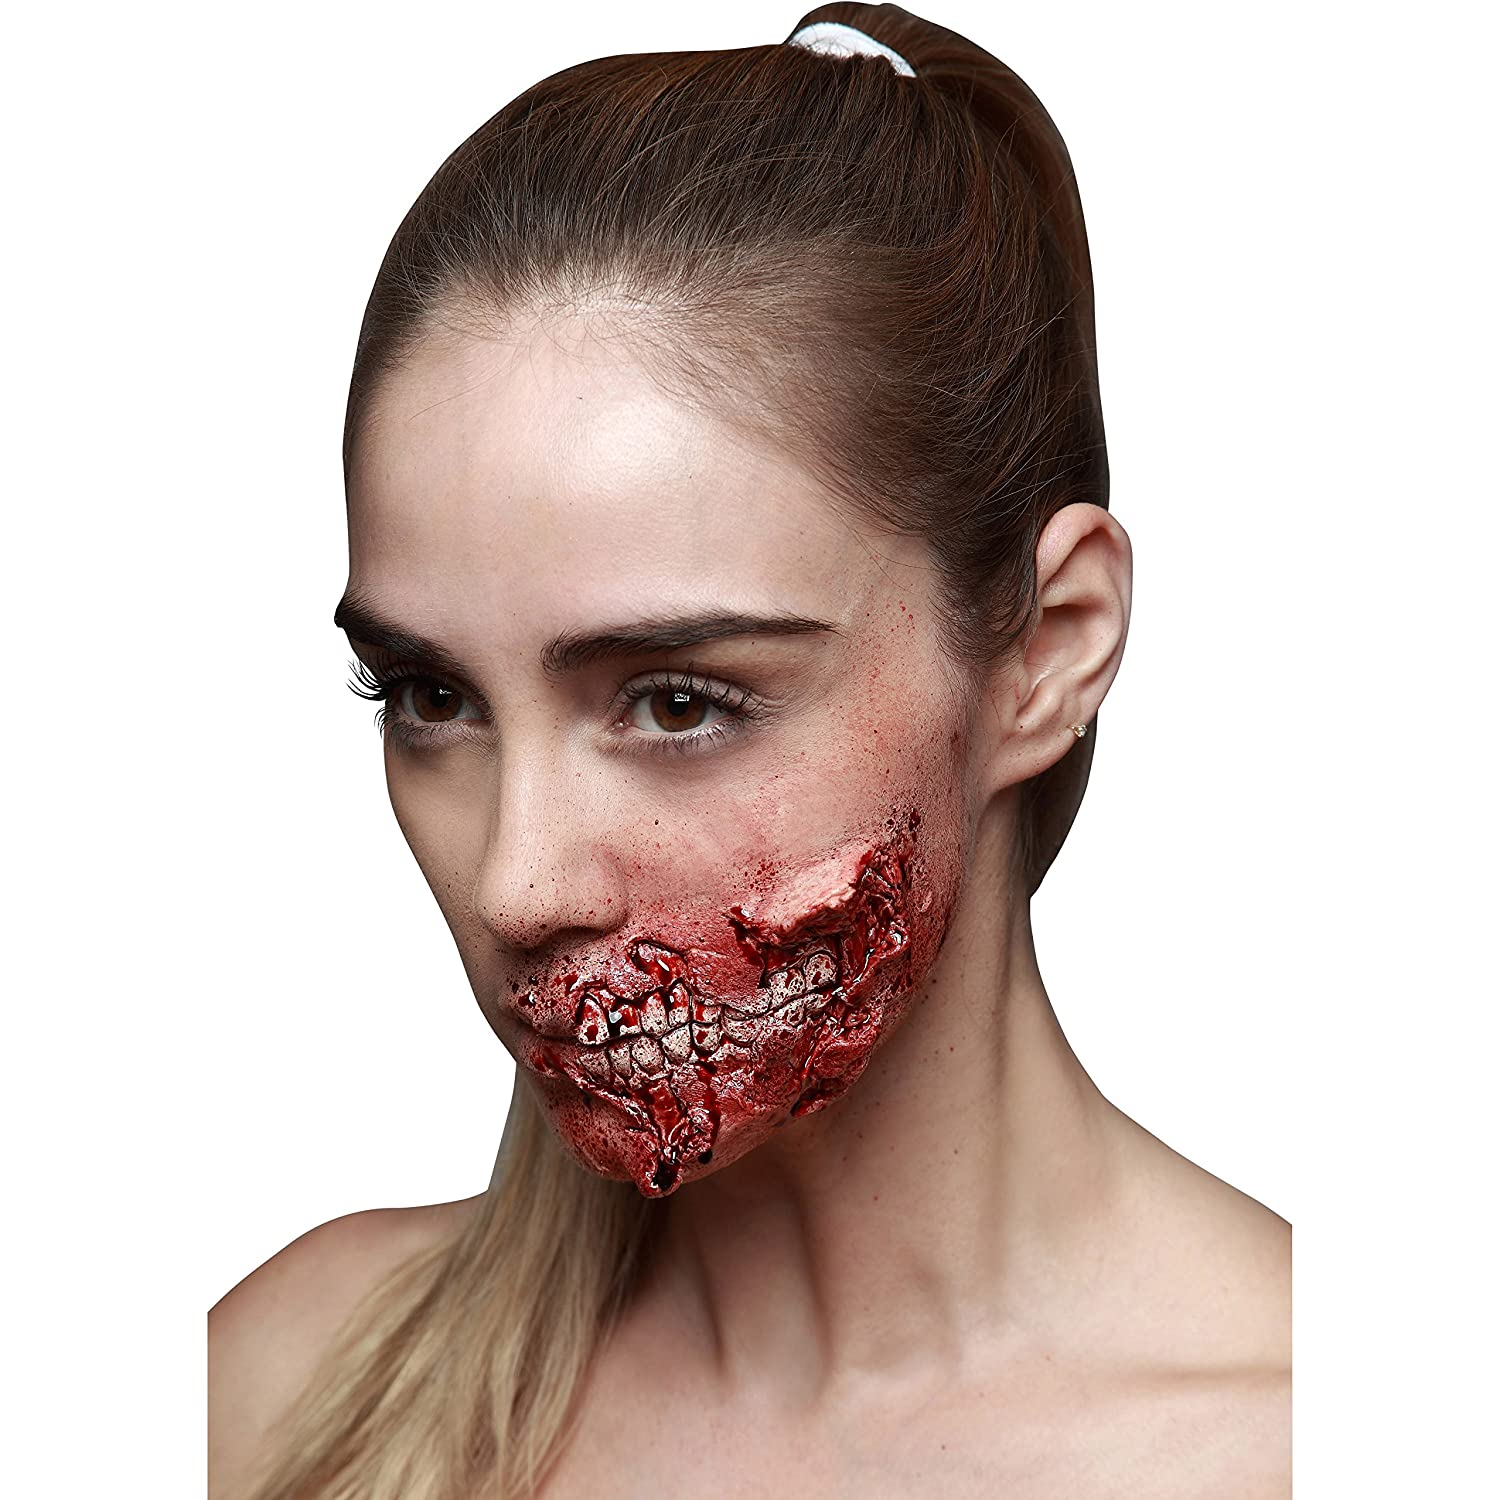 Viving Costumes Viving Costumes204518 Latex Zombie Wound (One Size)